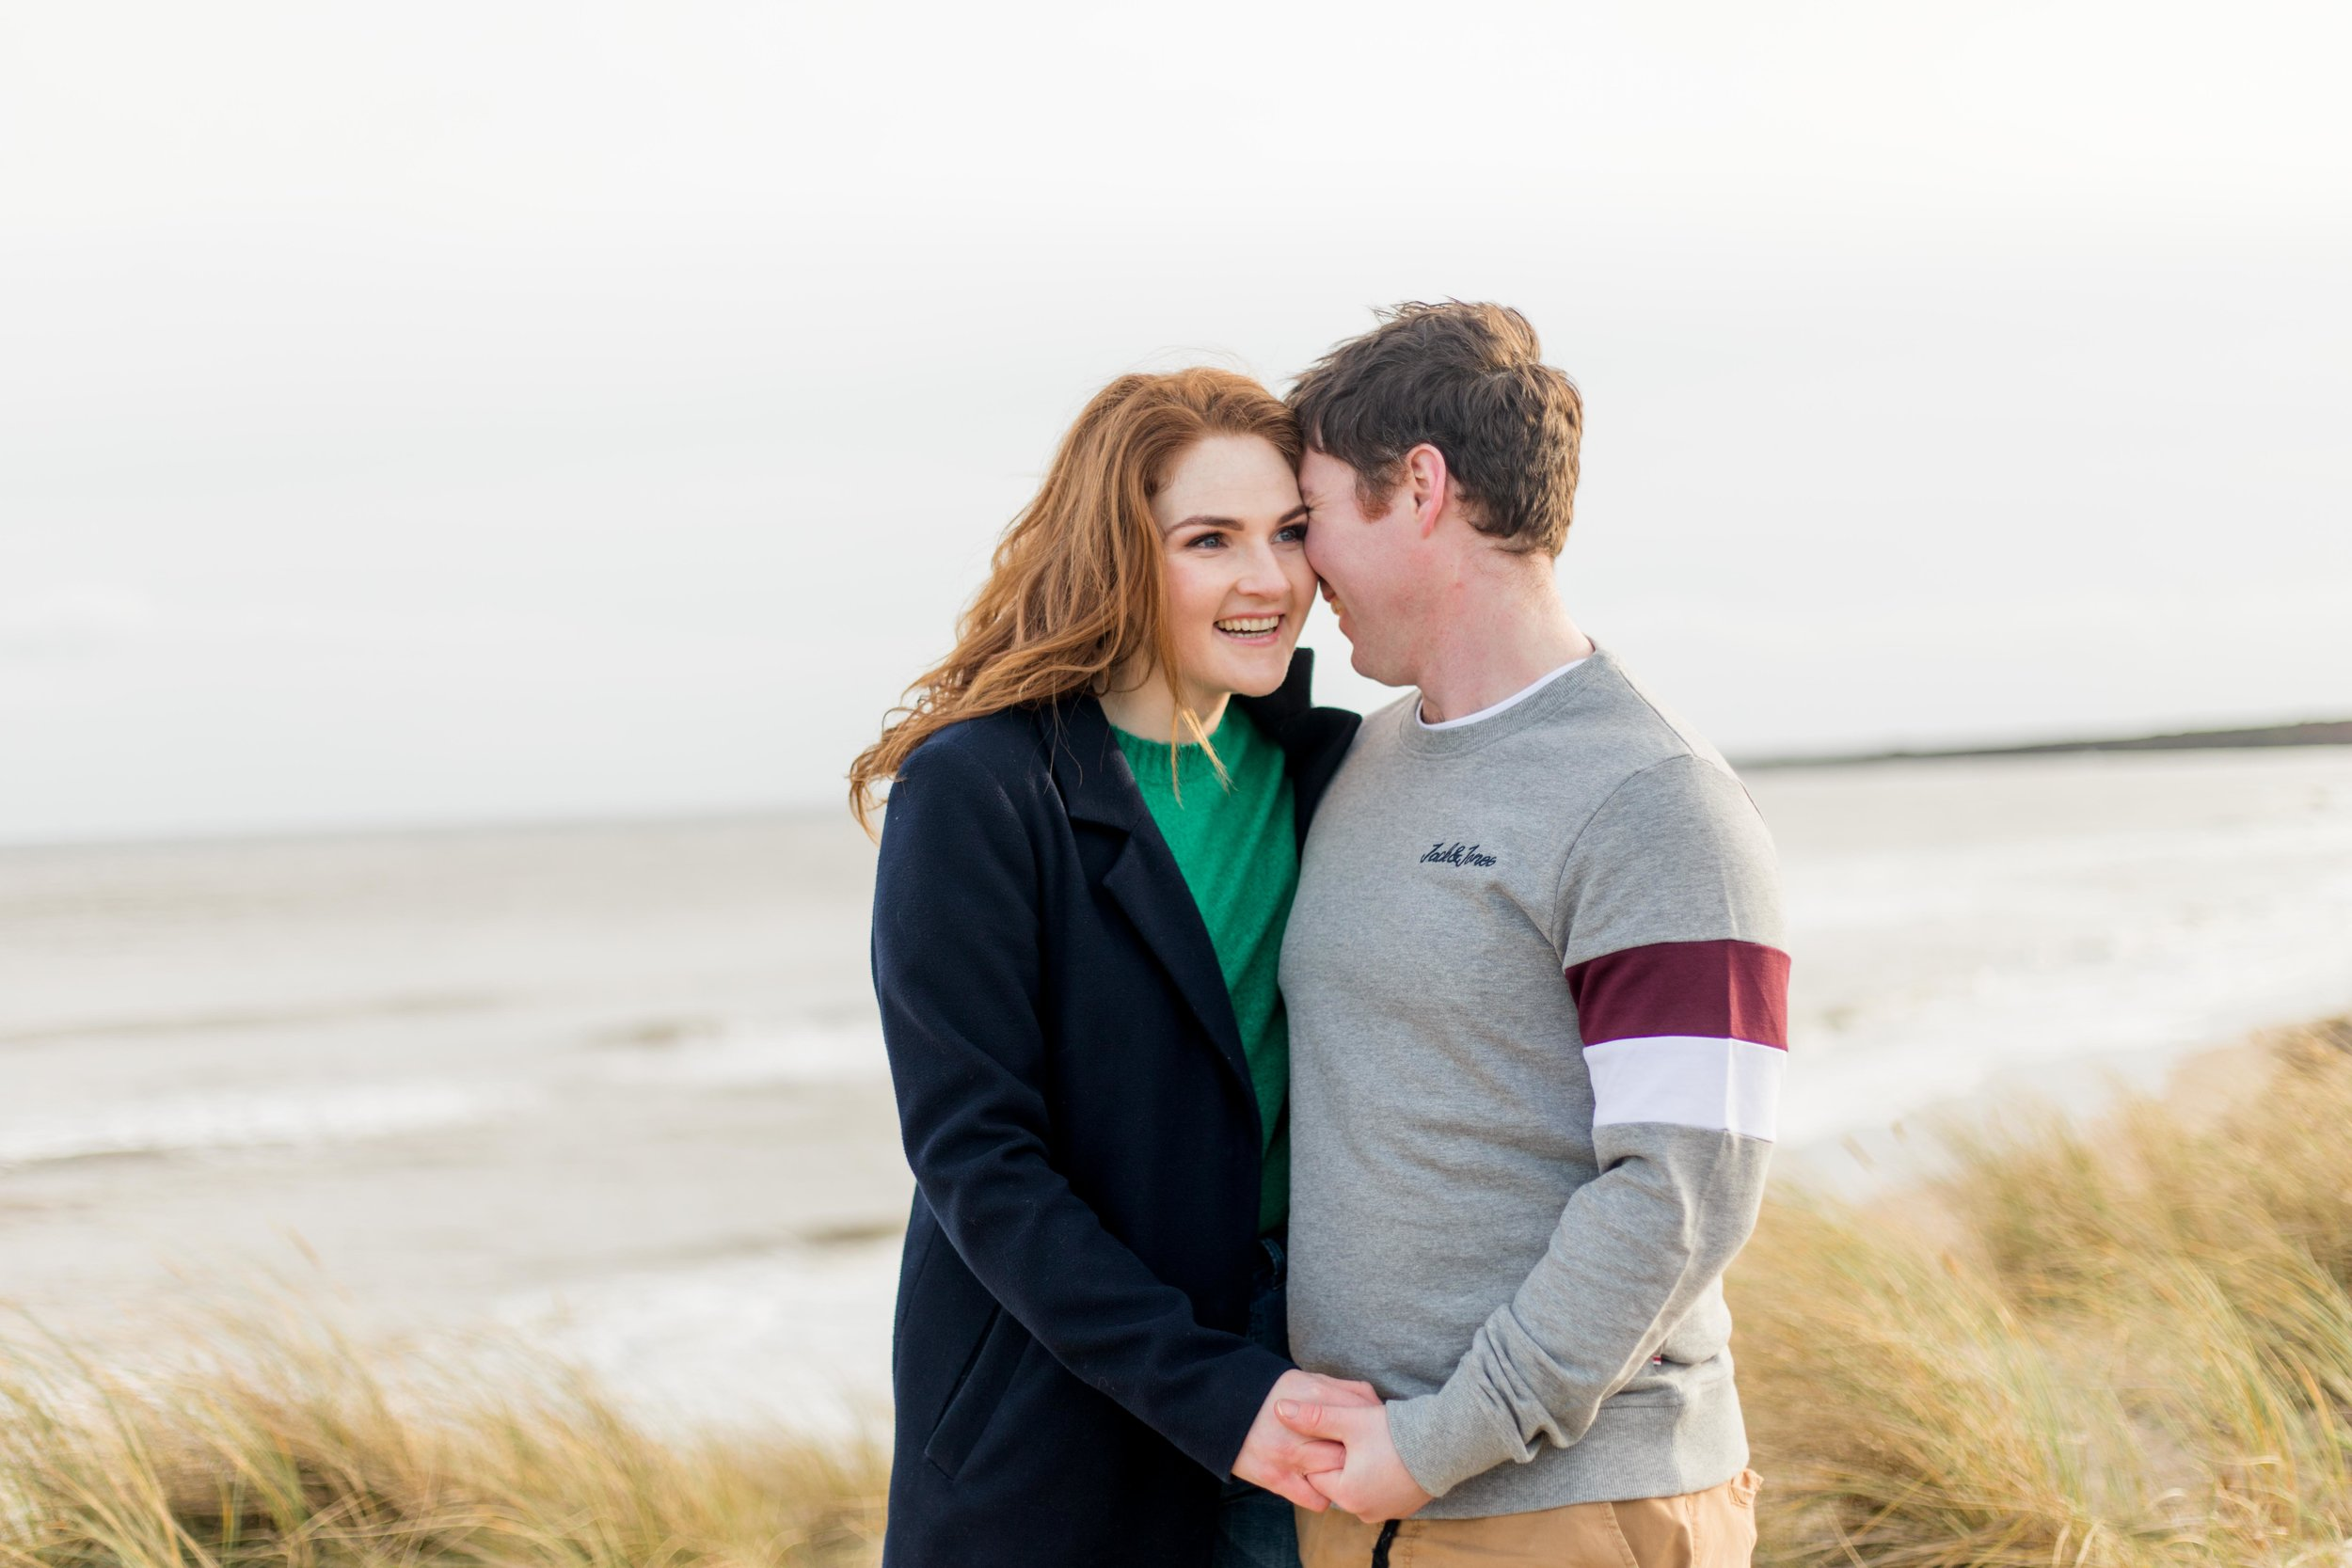 a couple posing for a photoshoot on a sandy beach a woman is dressed in green knit jumper and a black coat with red hair smiling at her fiancee in ireland